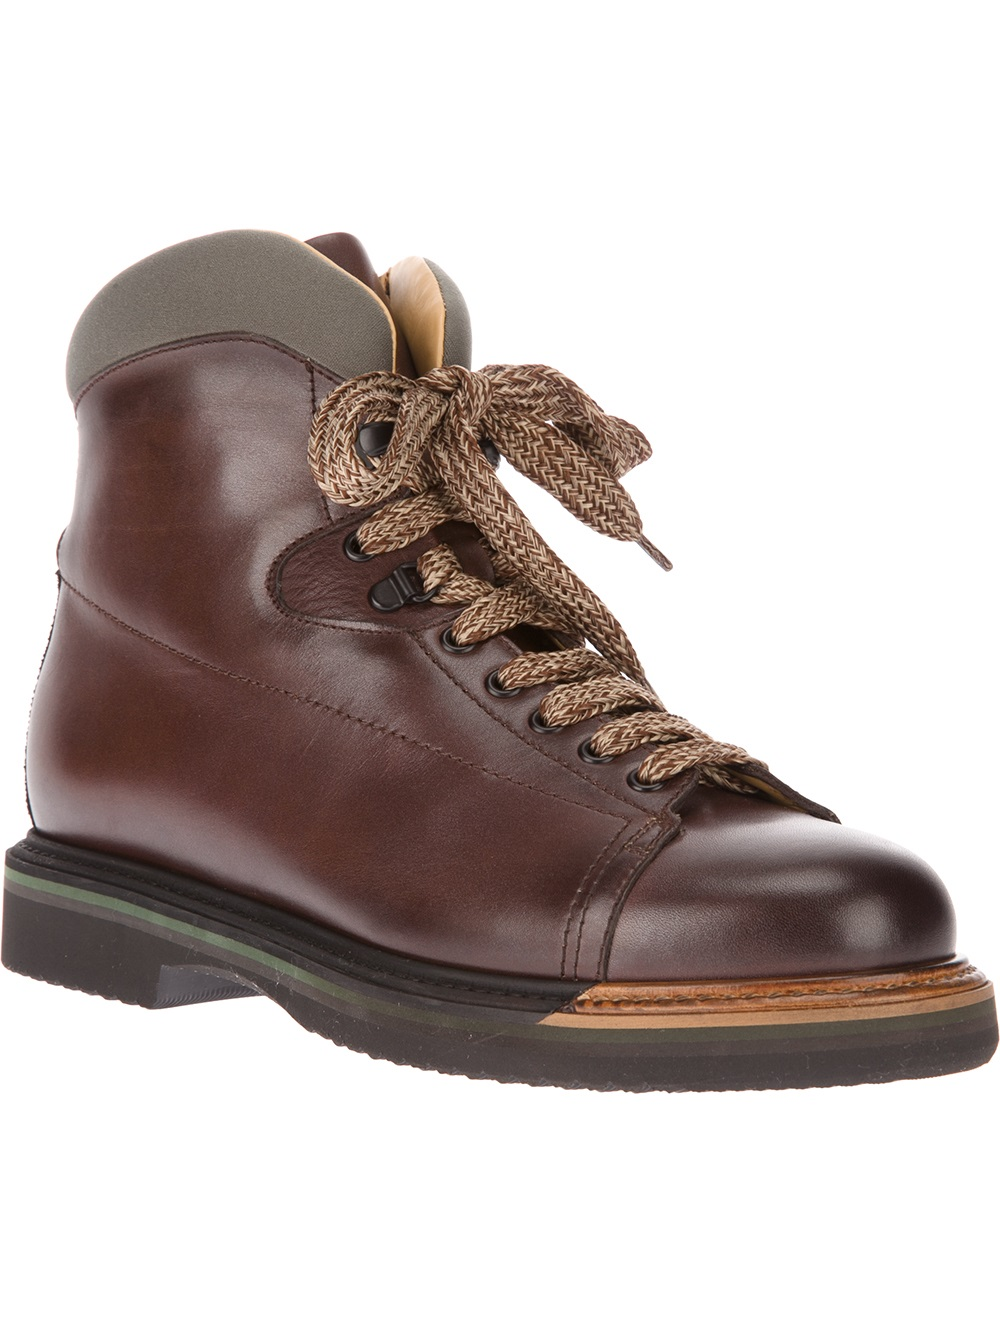 santoni hiking boot in brown for men lyst